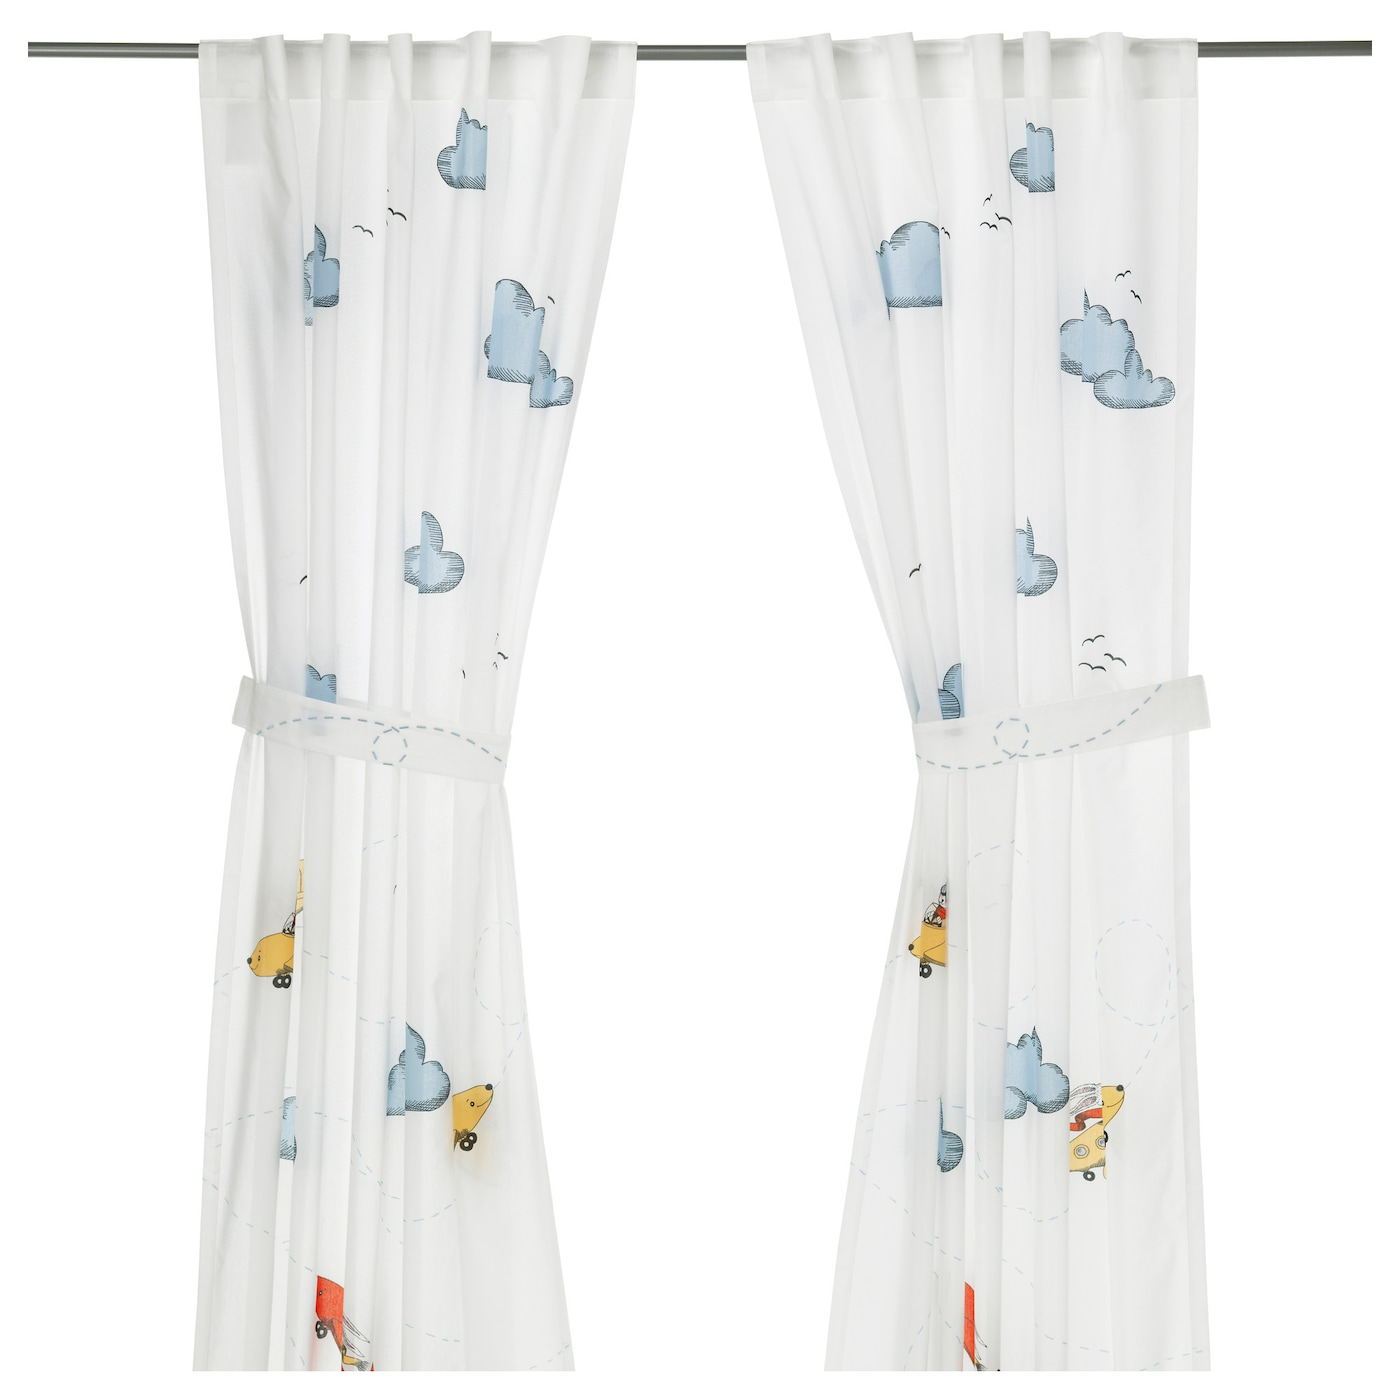 childrens curtains drapes ikea ireland. Black Bedroom Furniture Sets. Home Design Ideas